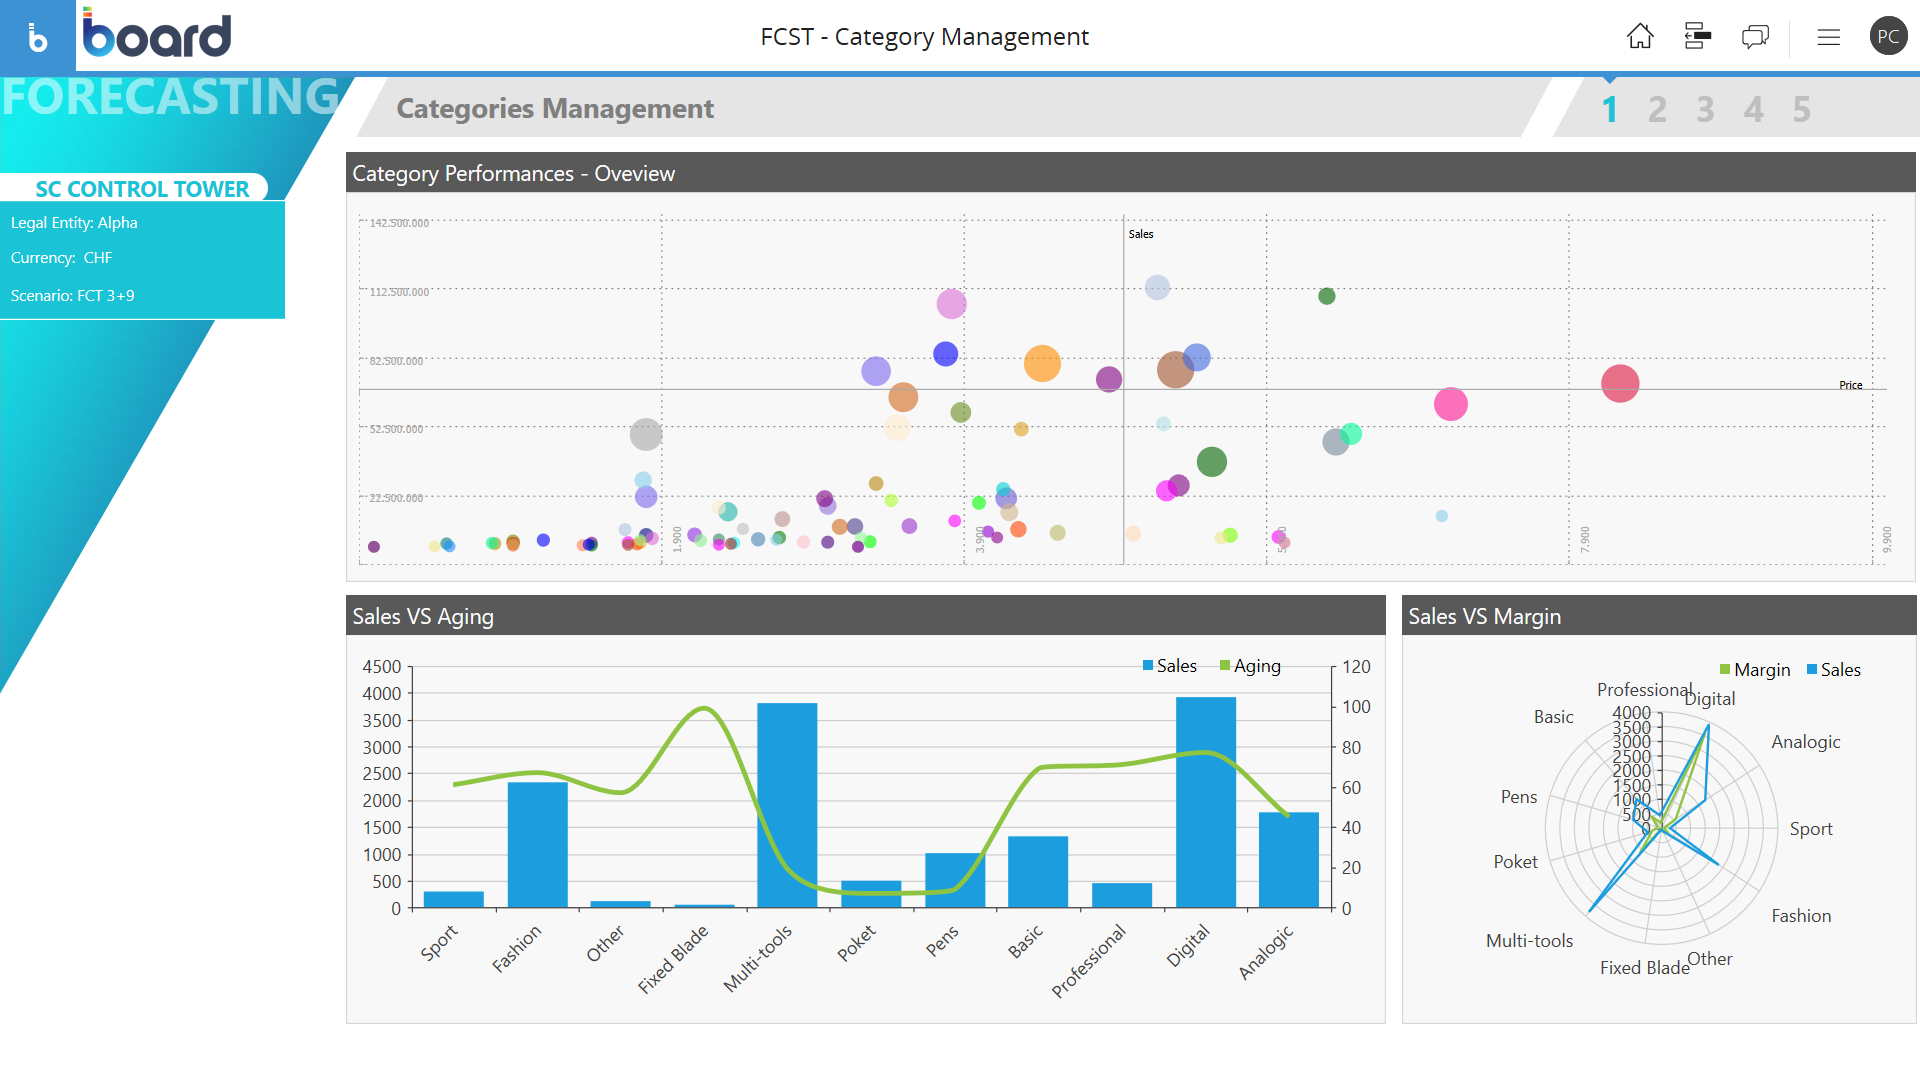 Example of Product and Categories Management Software for Supply planning